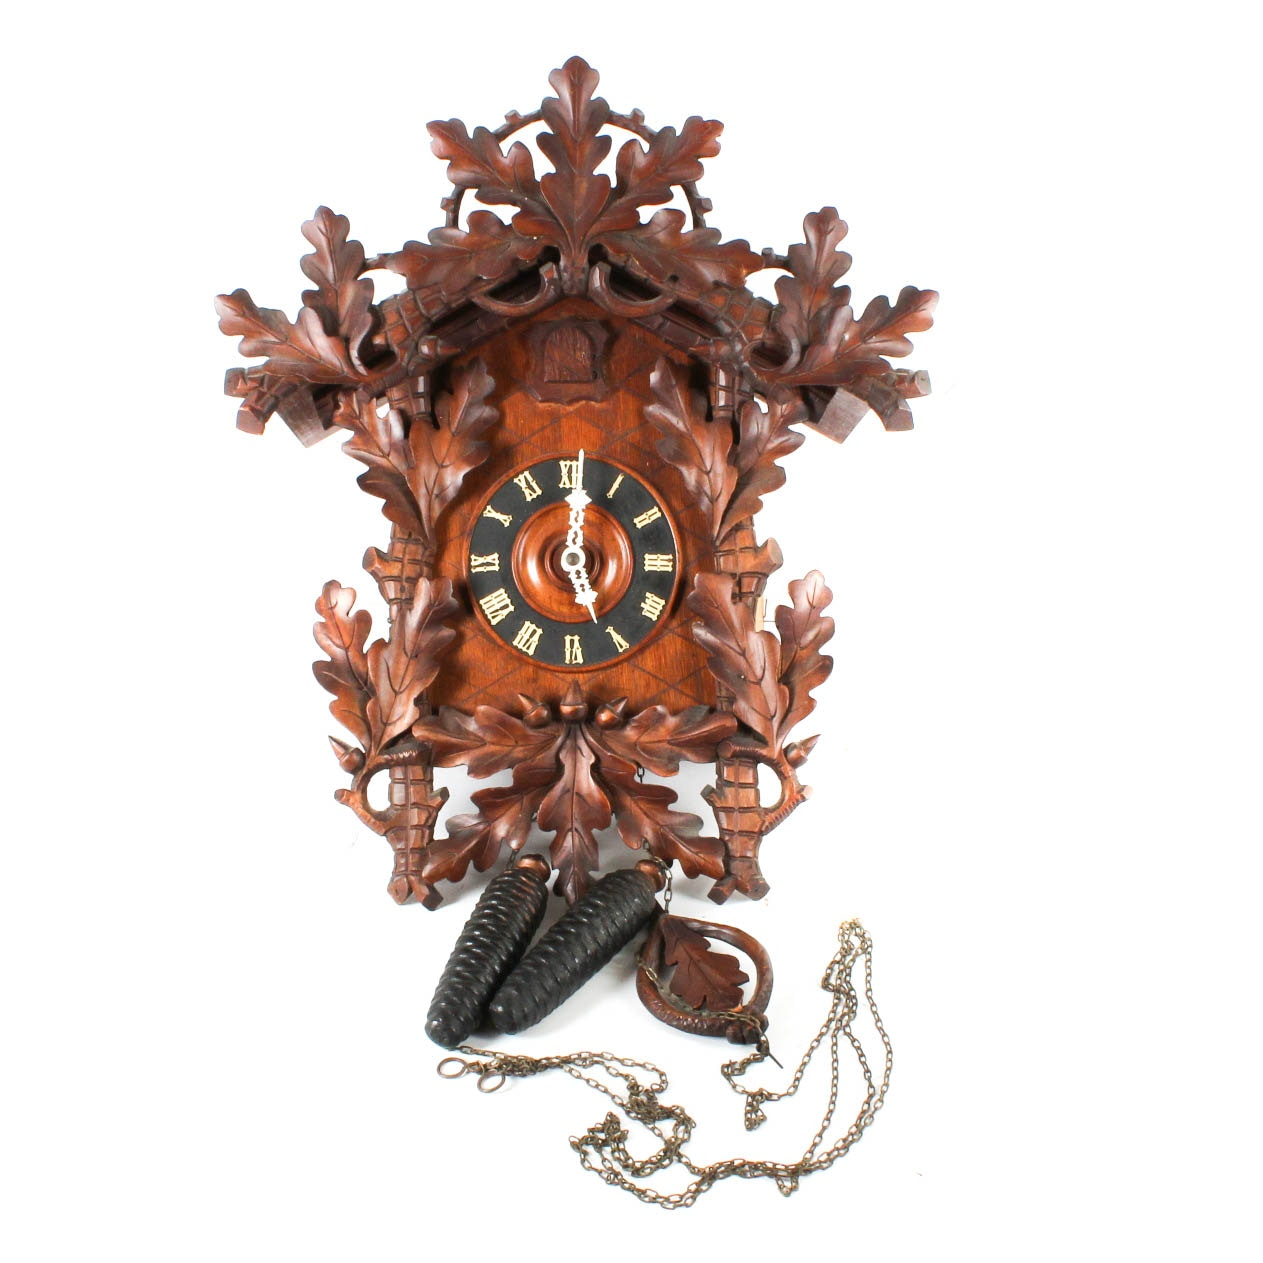 Breitinger & Sons Carved Wood Cuckoo Clock